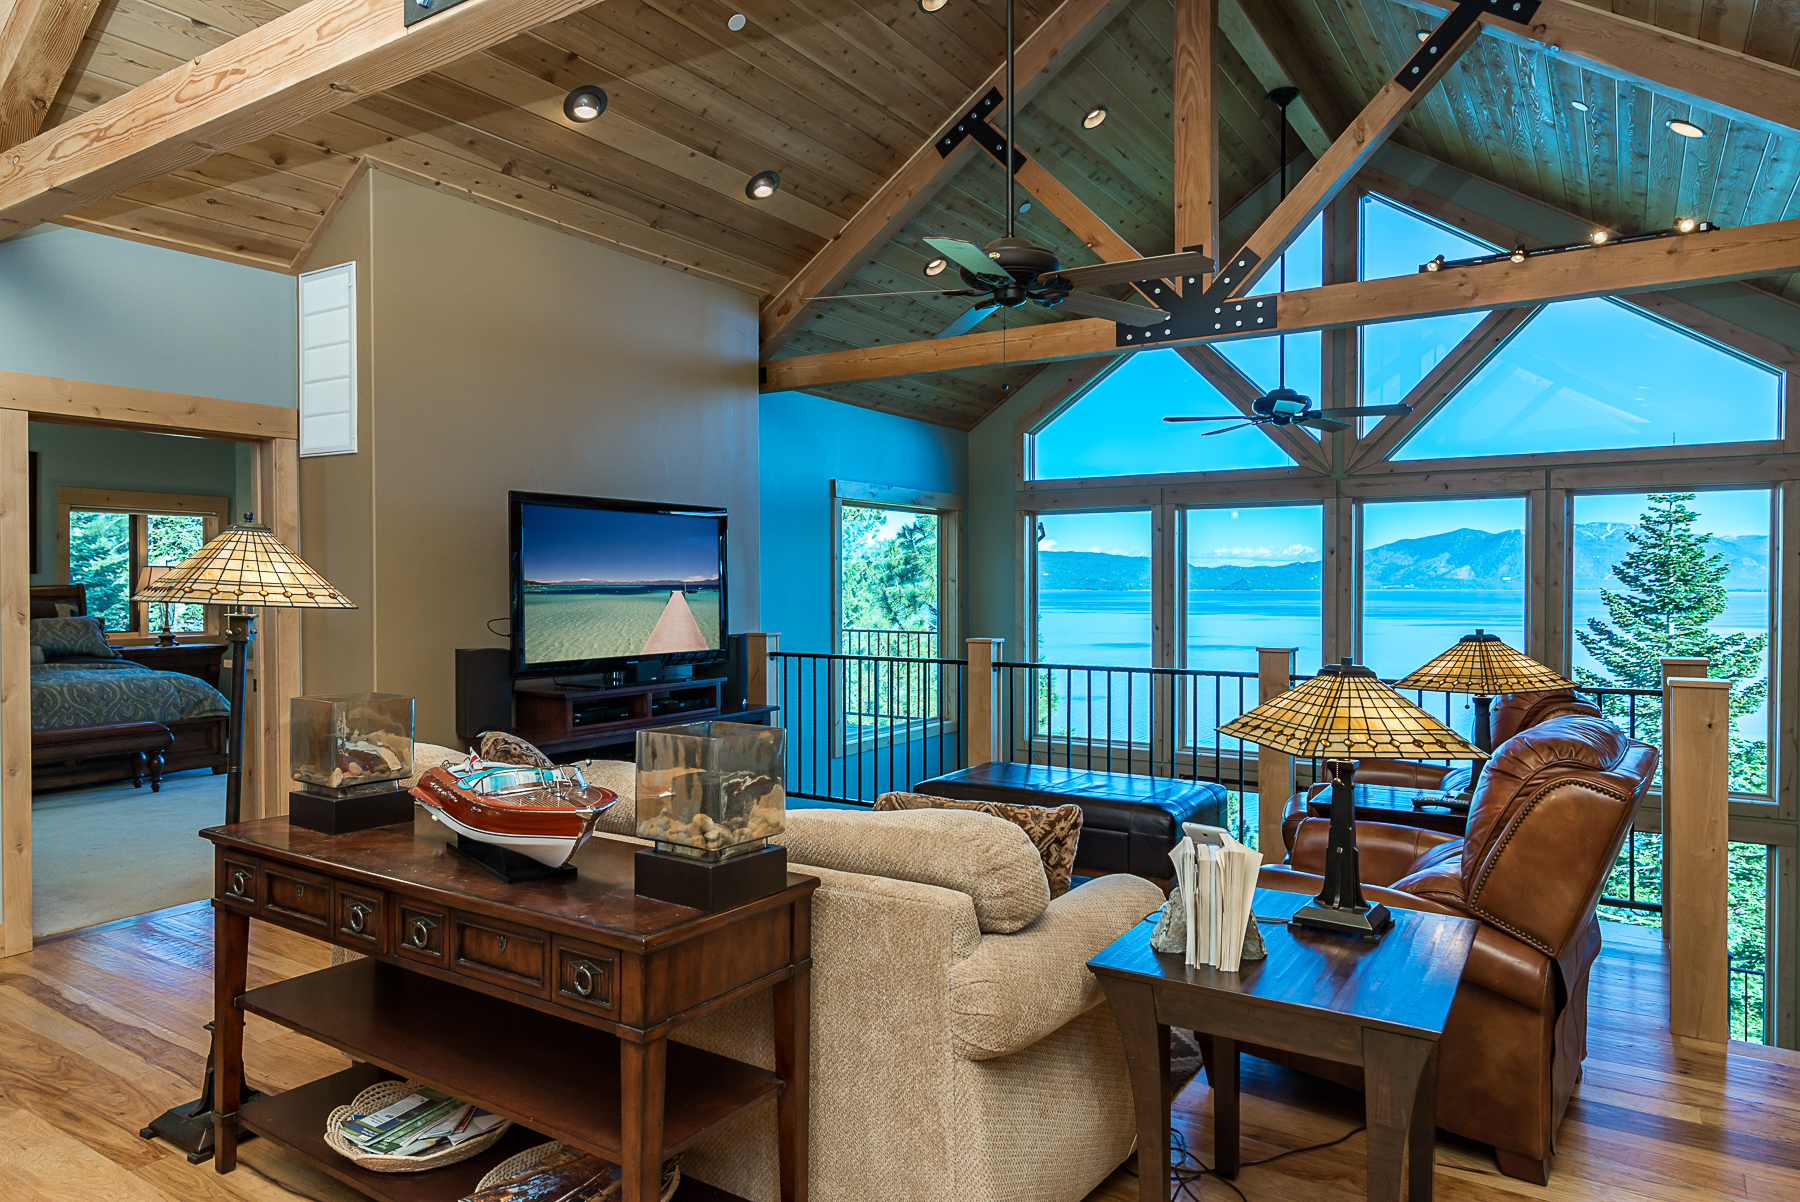 rent cabin ext sleeps cabins vacation a rental in tahoe lupine bedrooms trail sn lake properties